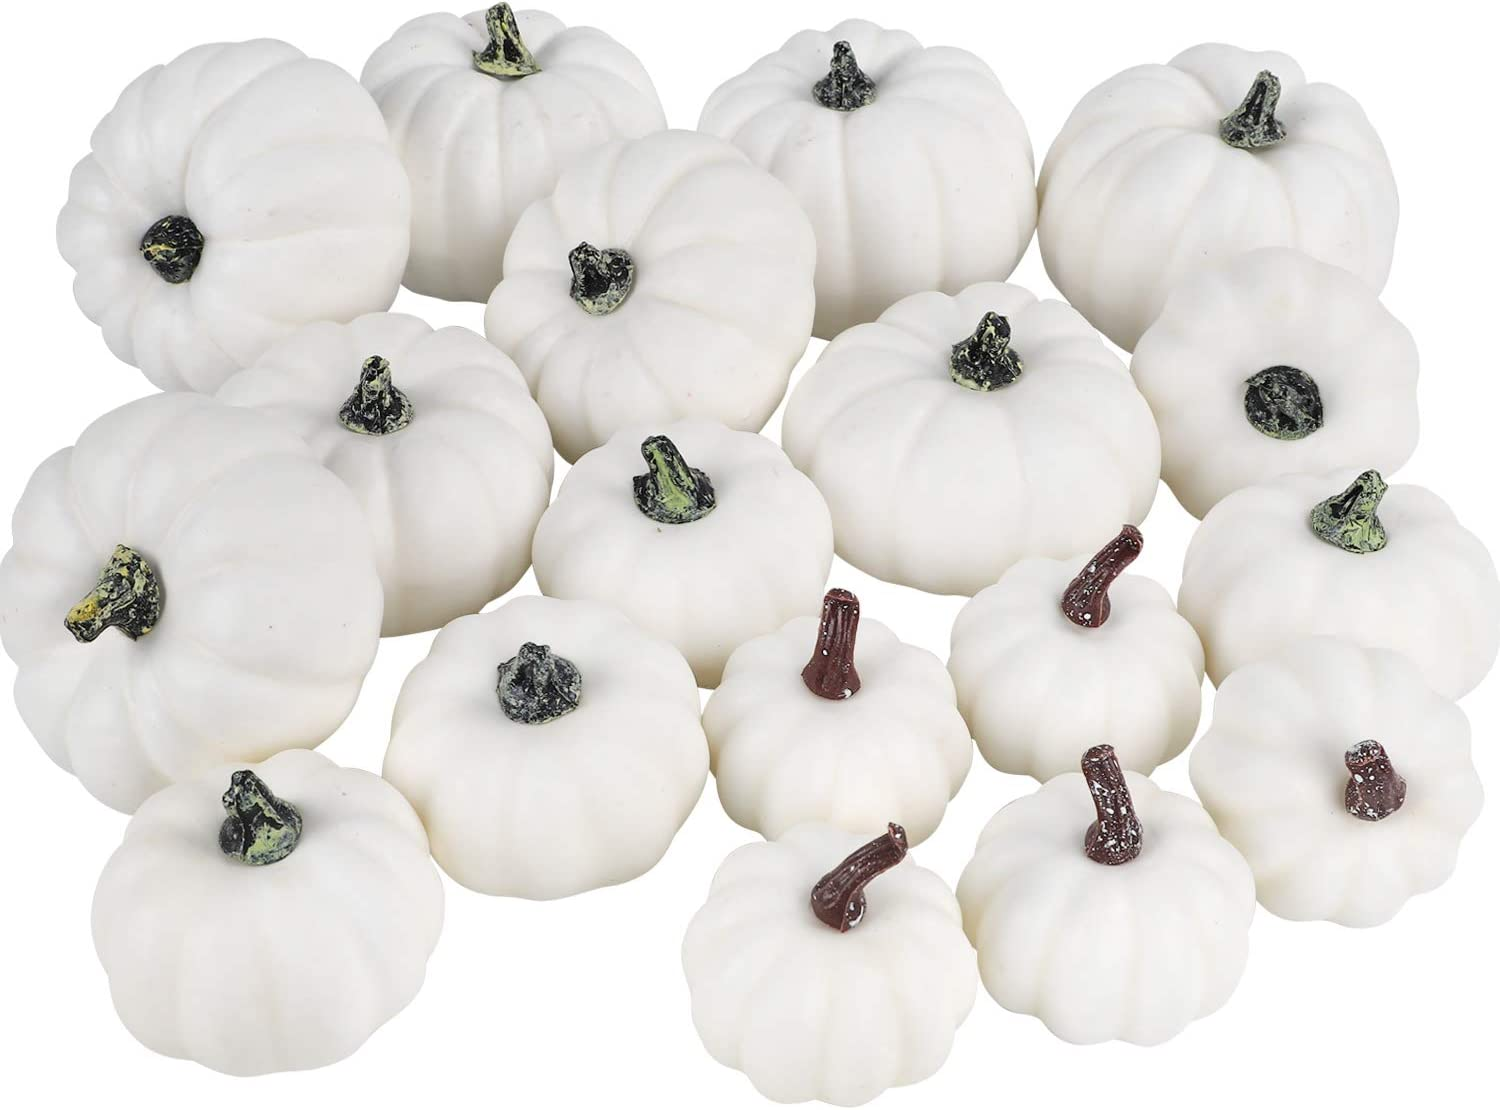 COCOBOO 18pcs Assorted Sizes Artificial White Pumpkins Set for Halloween Thanksgiving Autumn Party Decoration